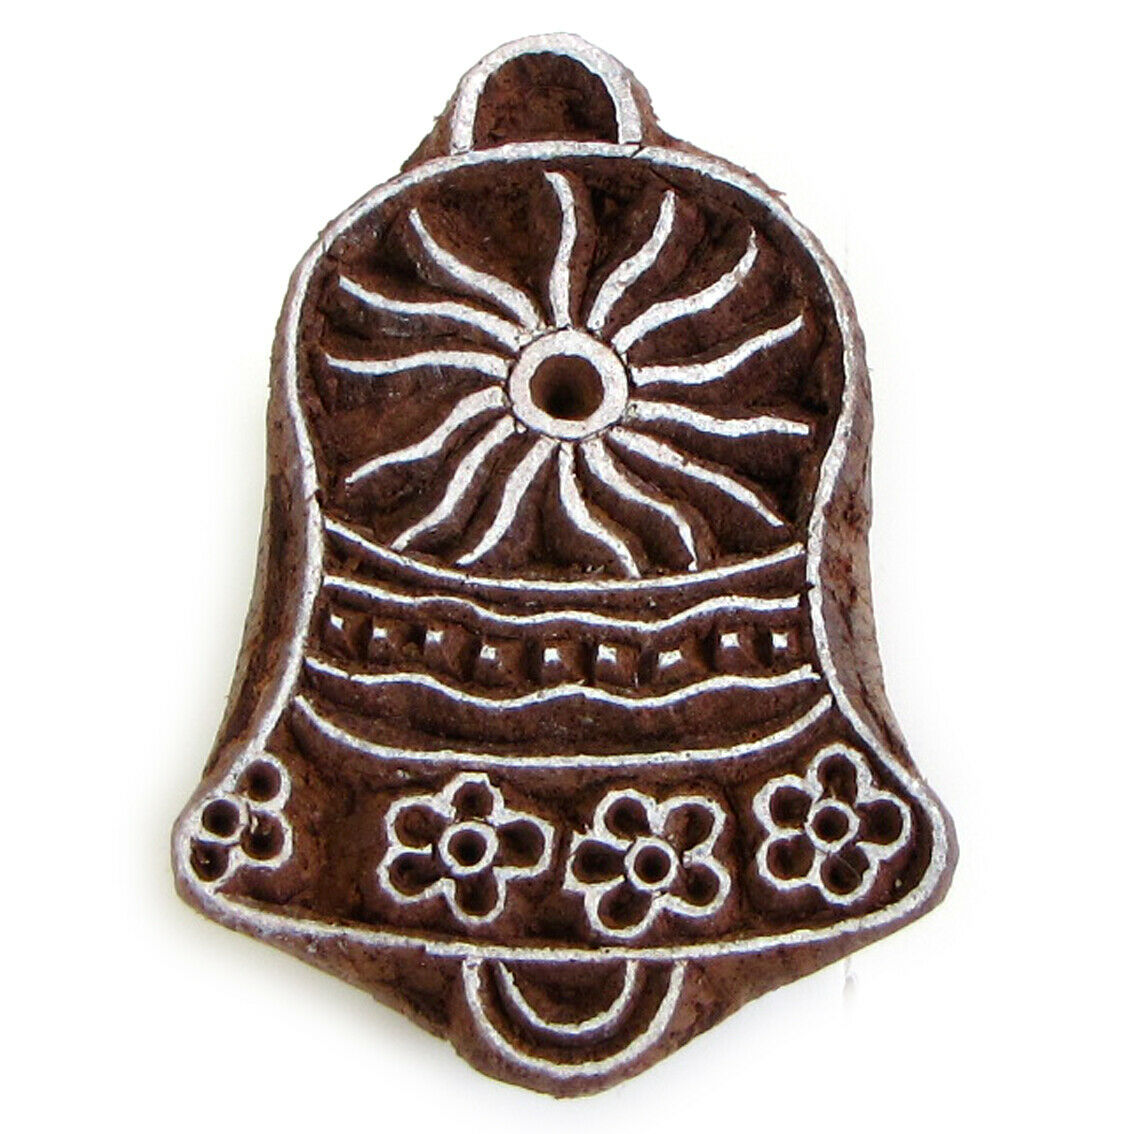 Christmas Bell 2in Ink Stamp Paper Craft Hand Carved India Wood Block Printing - $8.99